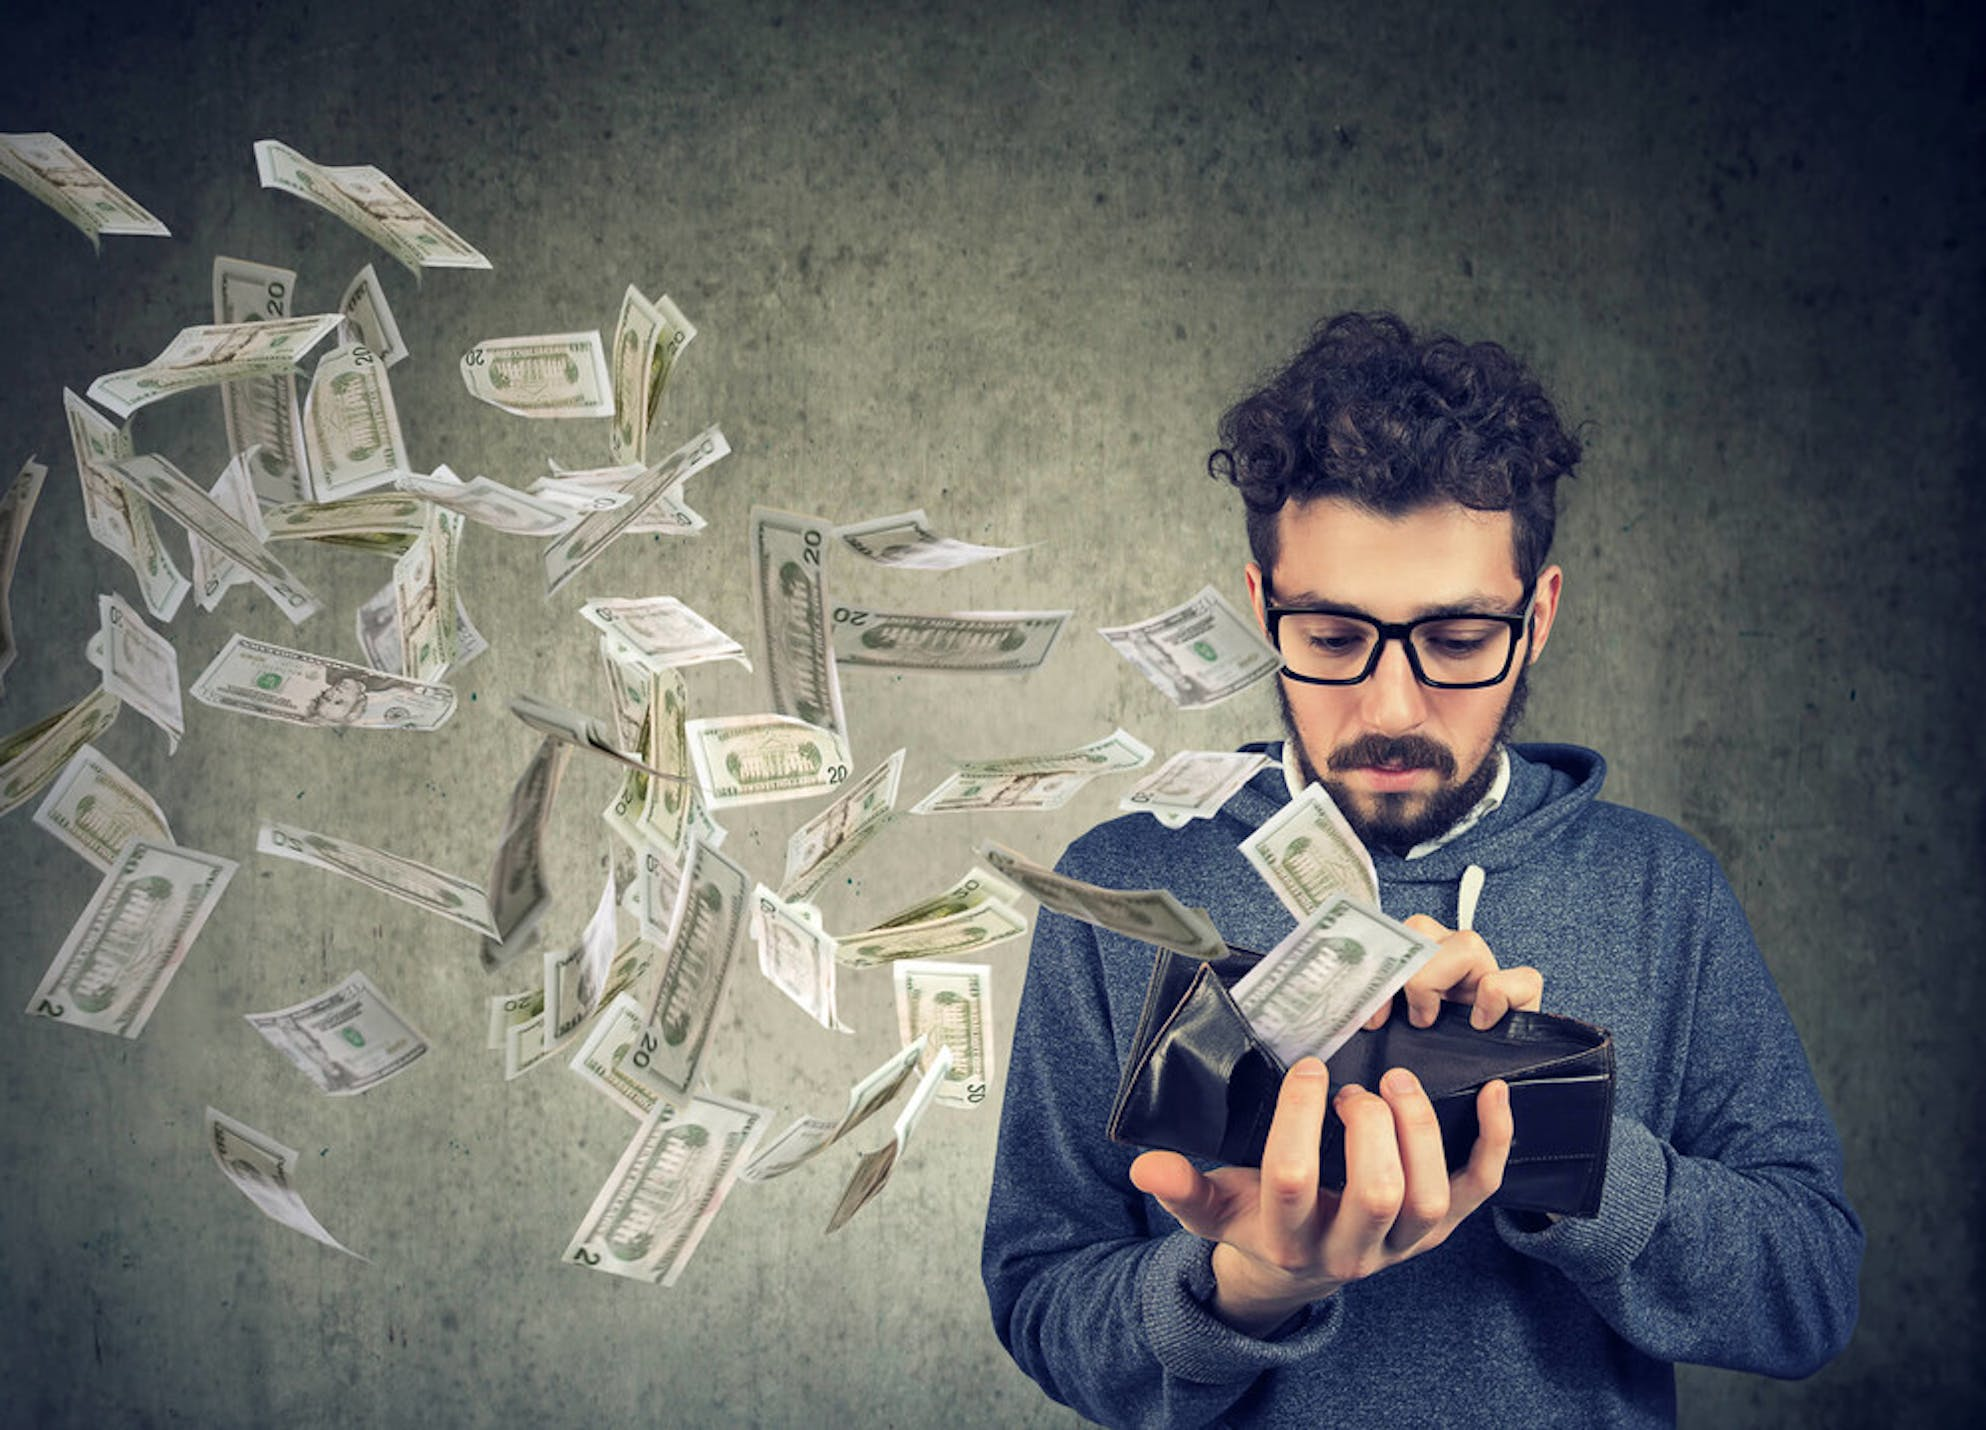 man budgeting too much or too little